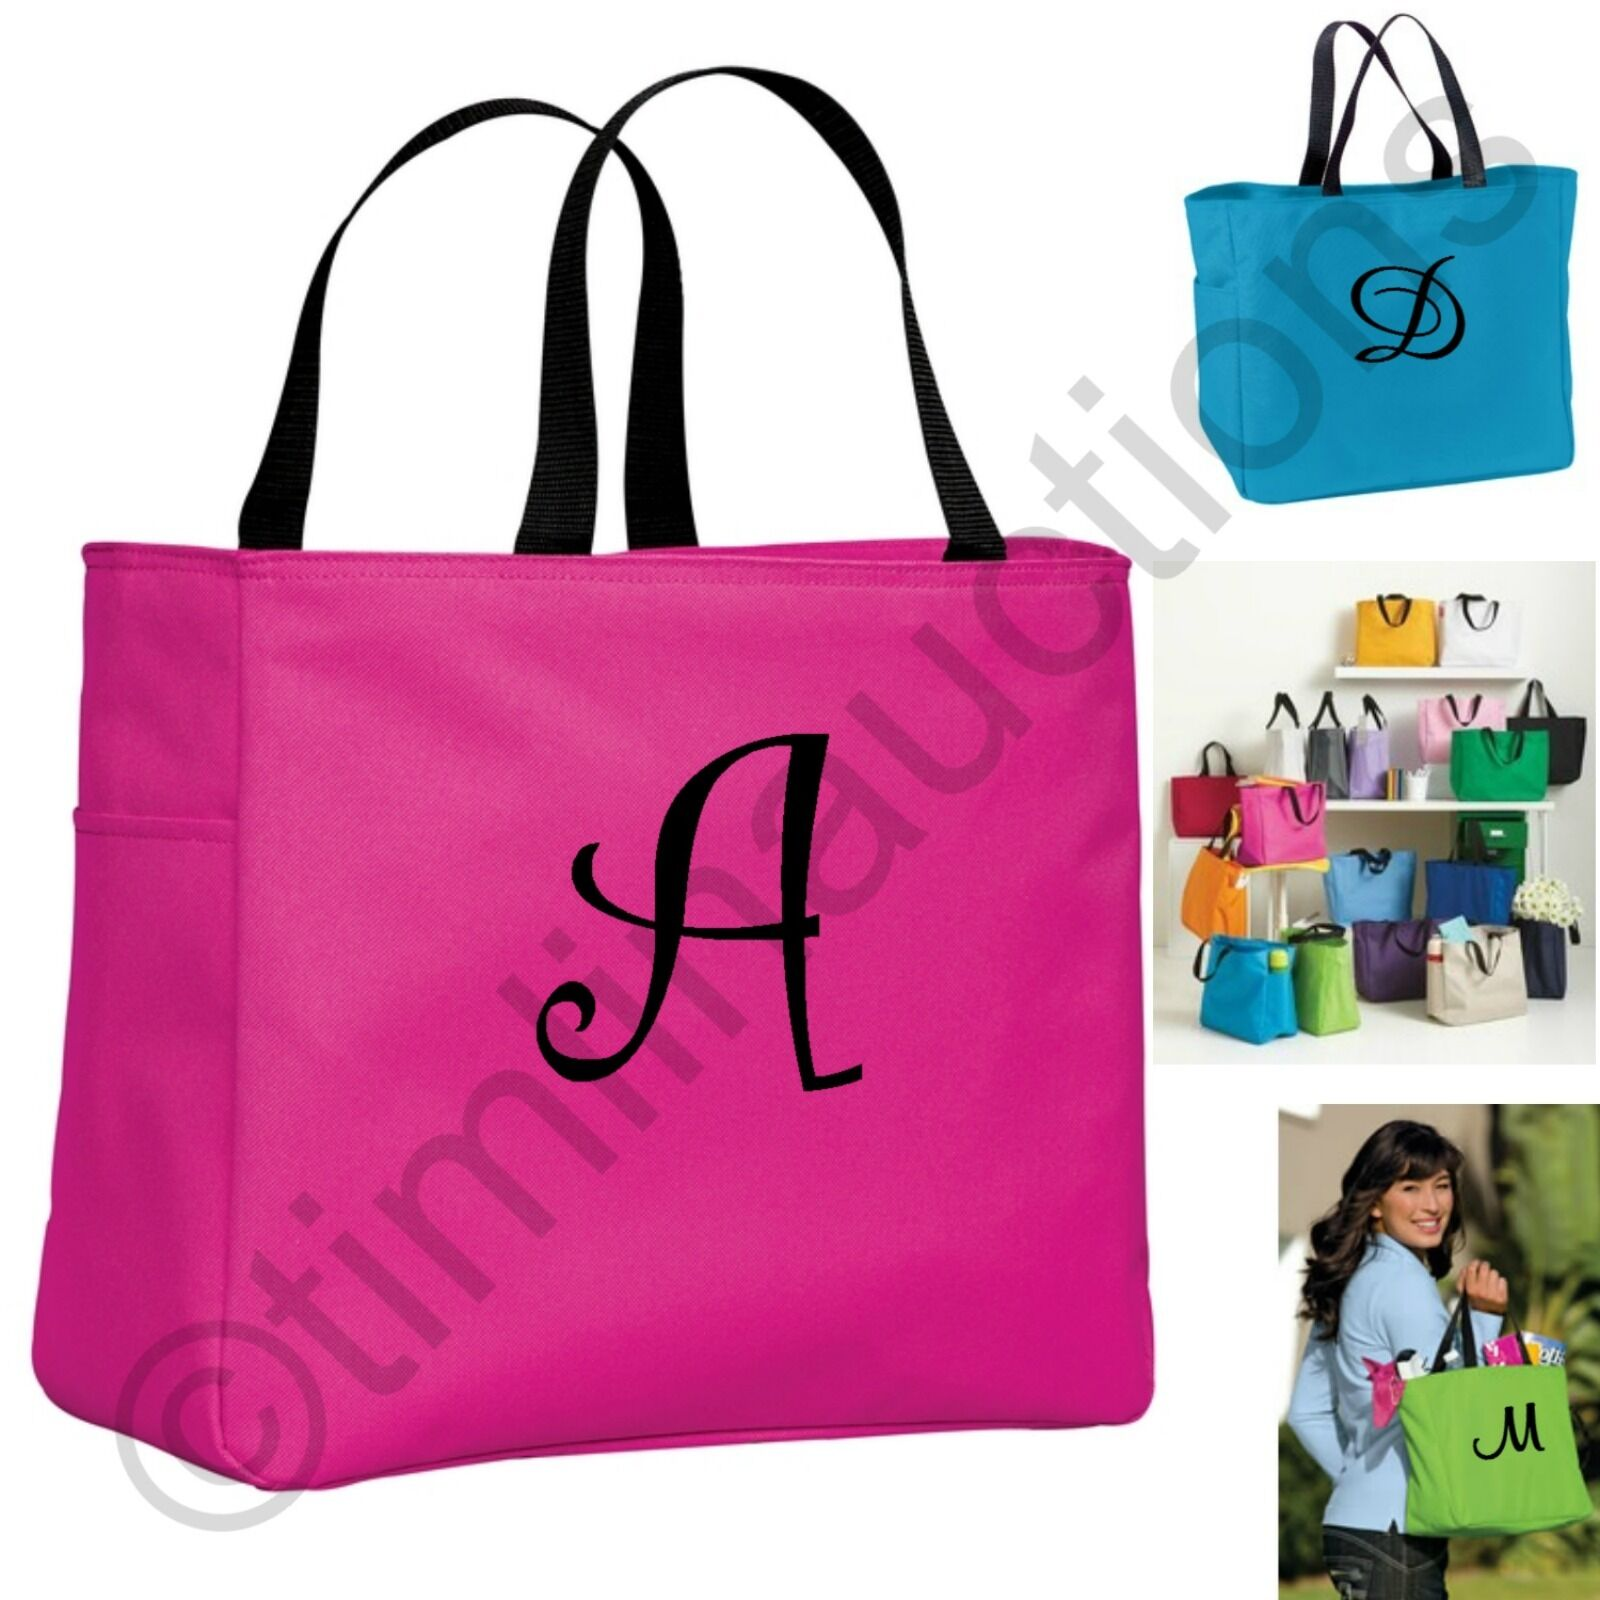 7bd88214c7 Details about Personalized Tote Bags Monogram Gift Ideas for Teachers  Coaches Appreciation